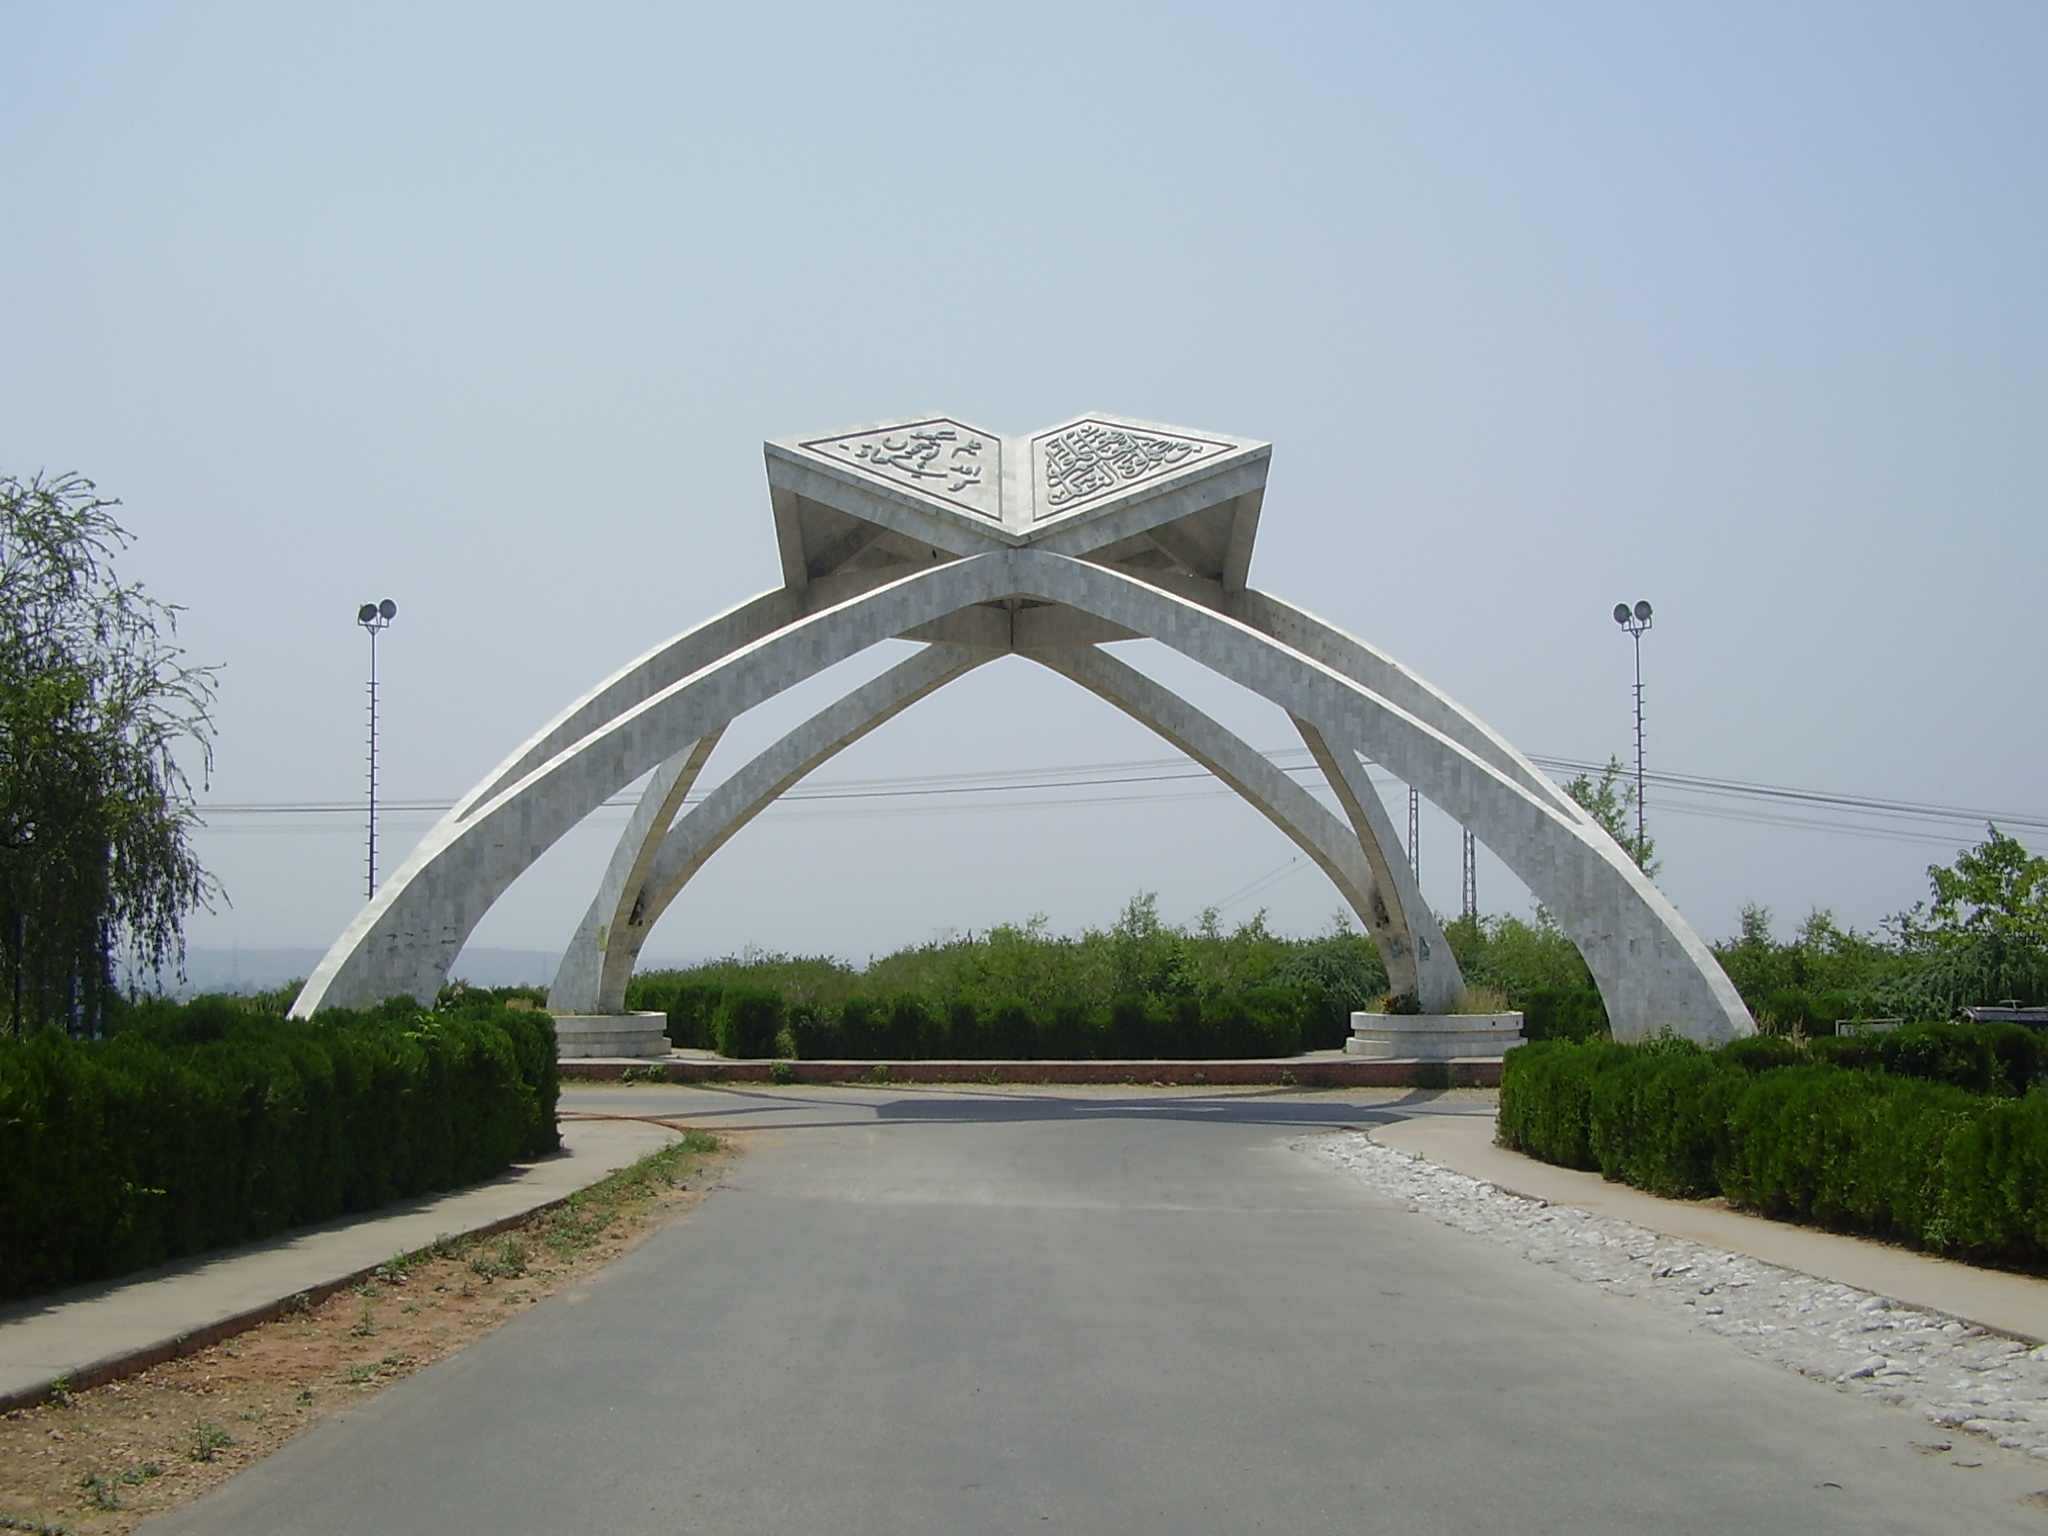 0%2f0f%2fquaid i azam university entrance